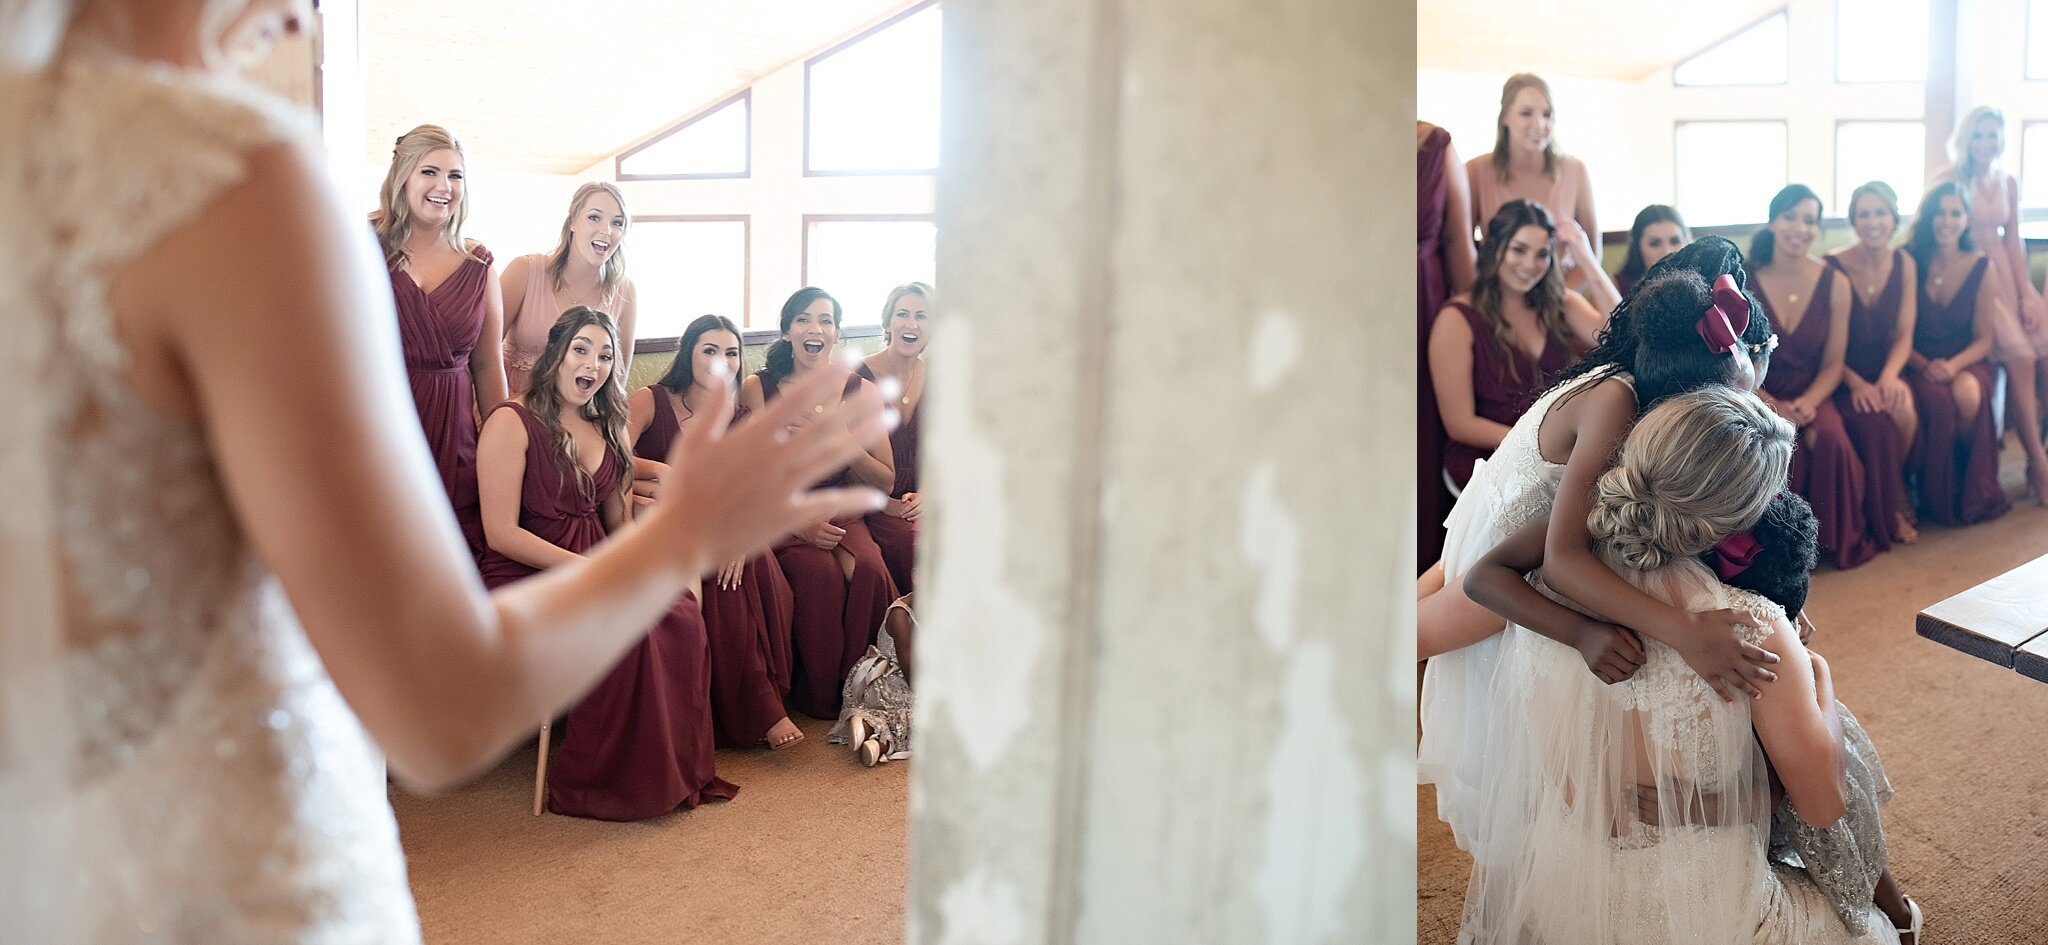 bride shows bridesmaids her final look on her wedding day